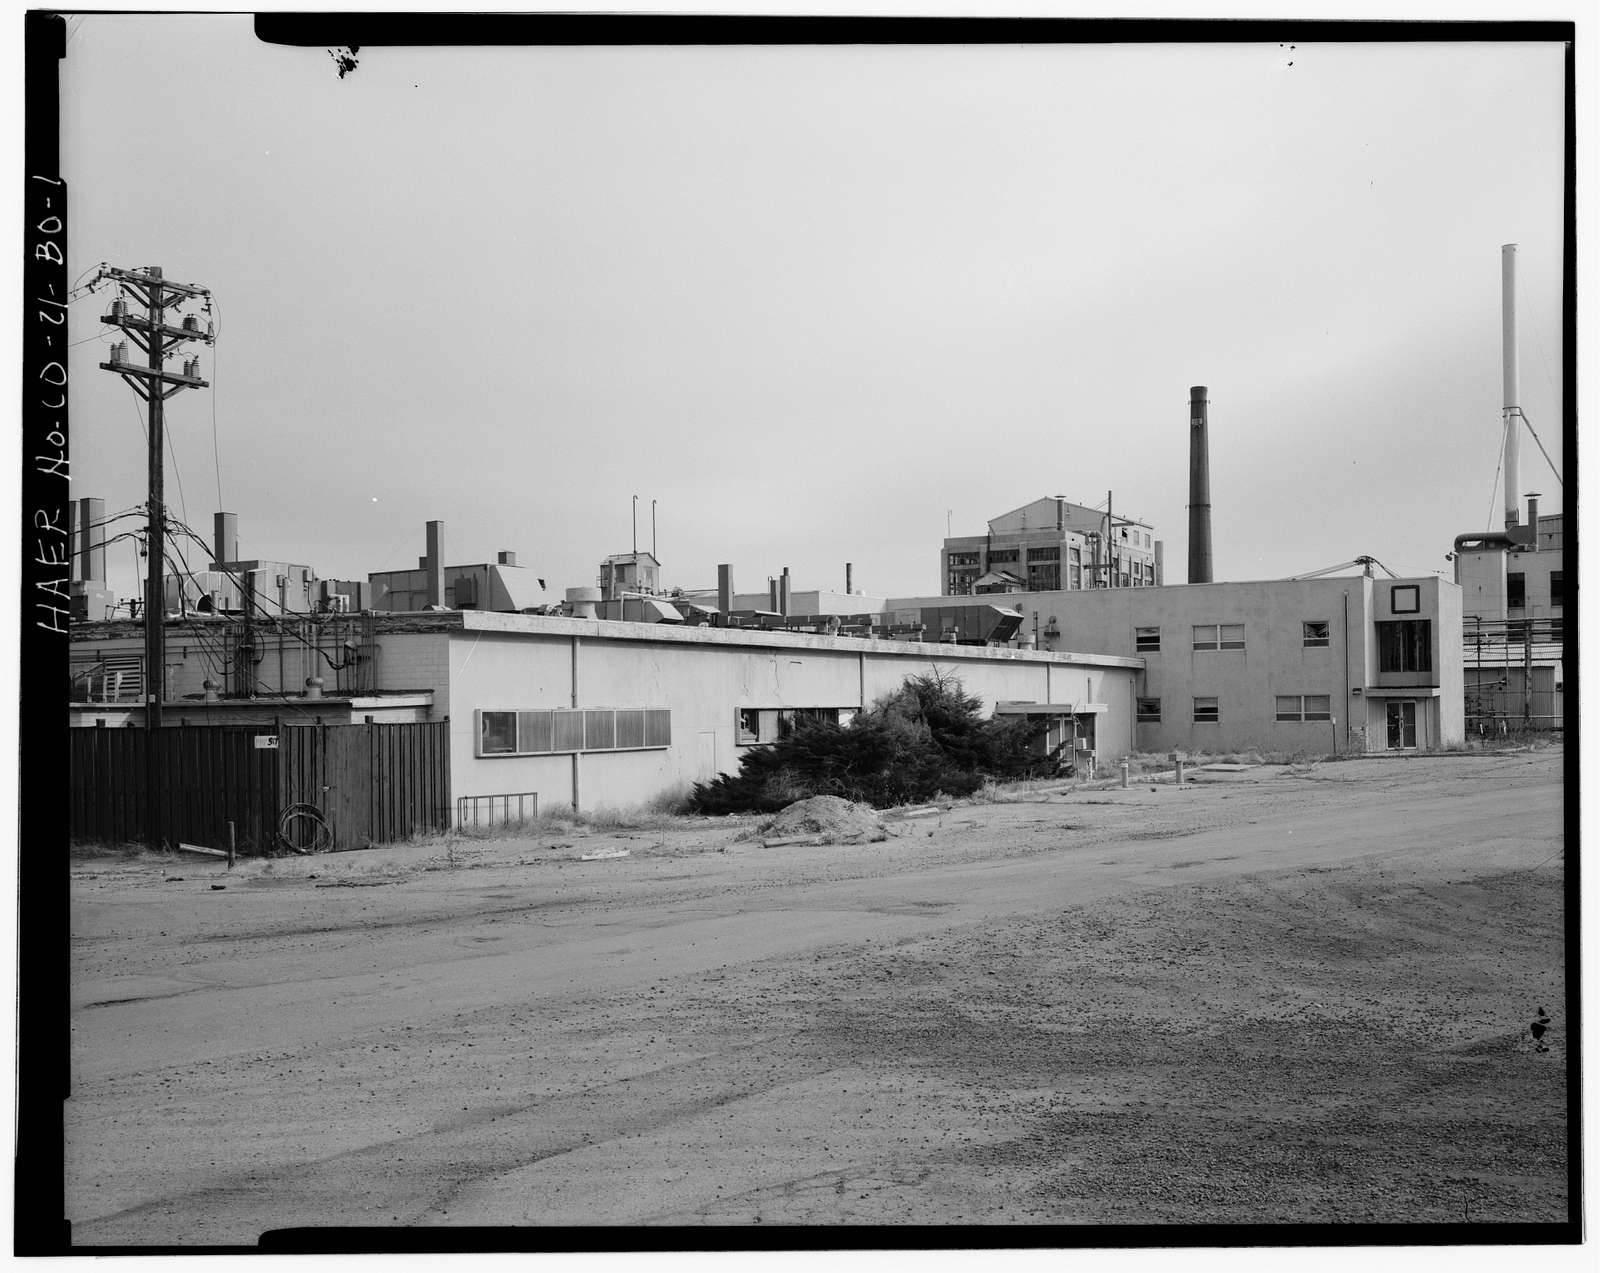 Rocky Mountain Arsenal, Lewisite & Distilled Mustard Change House-Laboratory, 620 feet South of December Seventh Avenue; 820 feet East of D Street, Commerce City, Adams County, CO